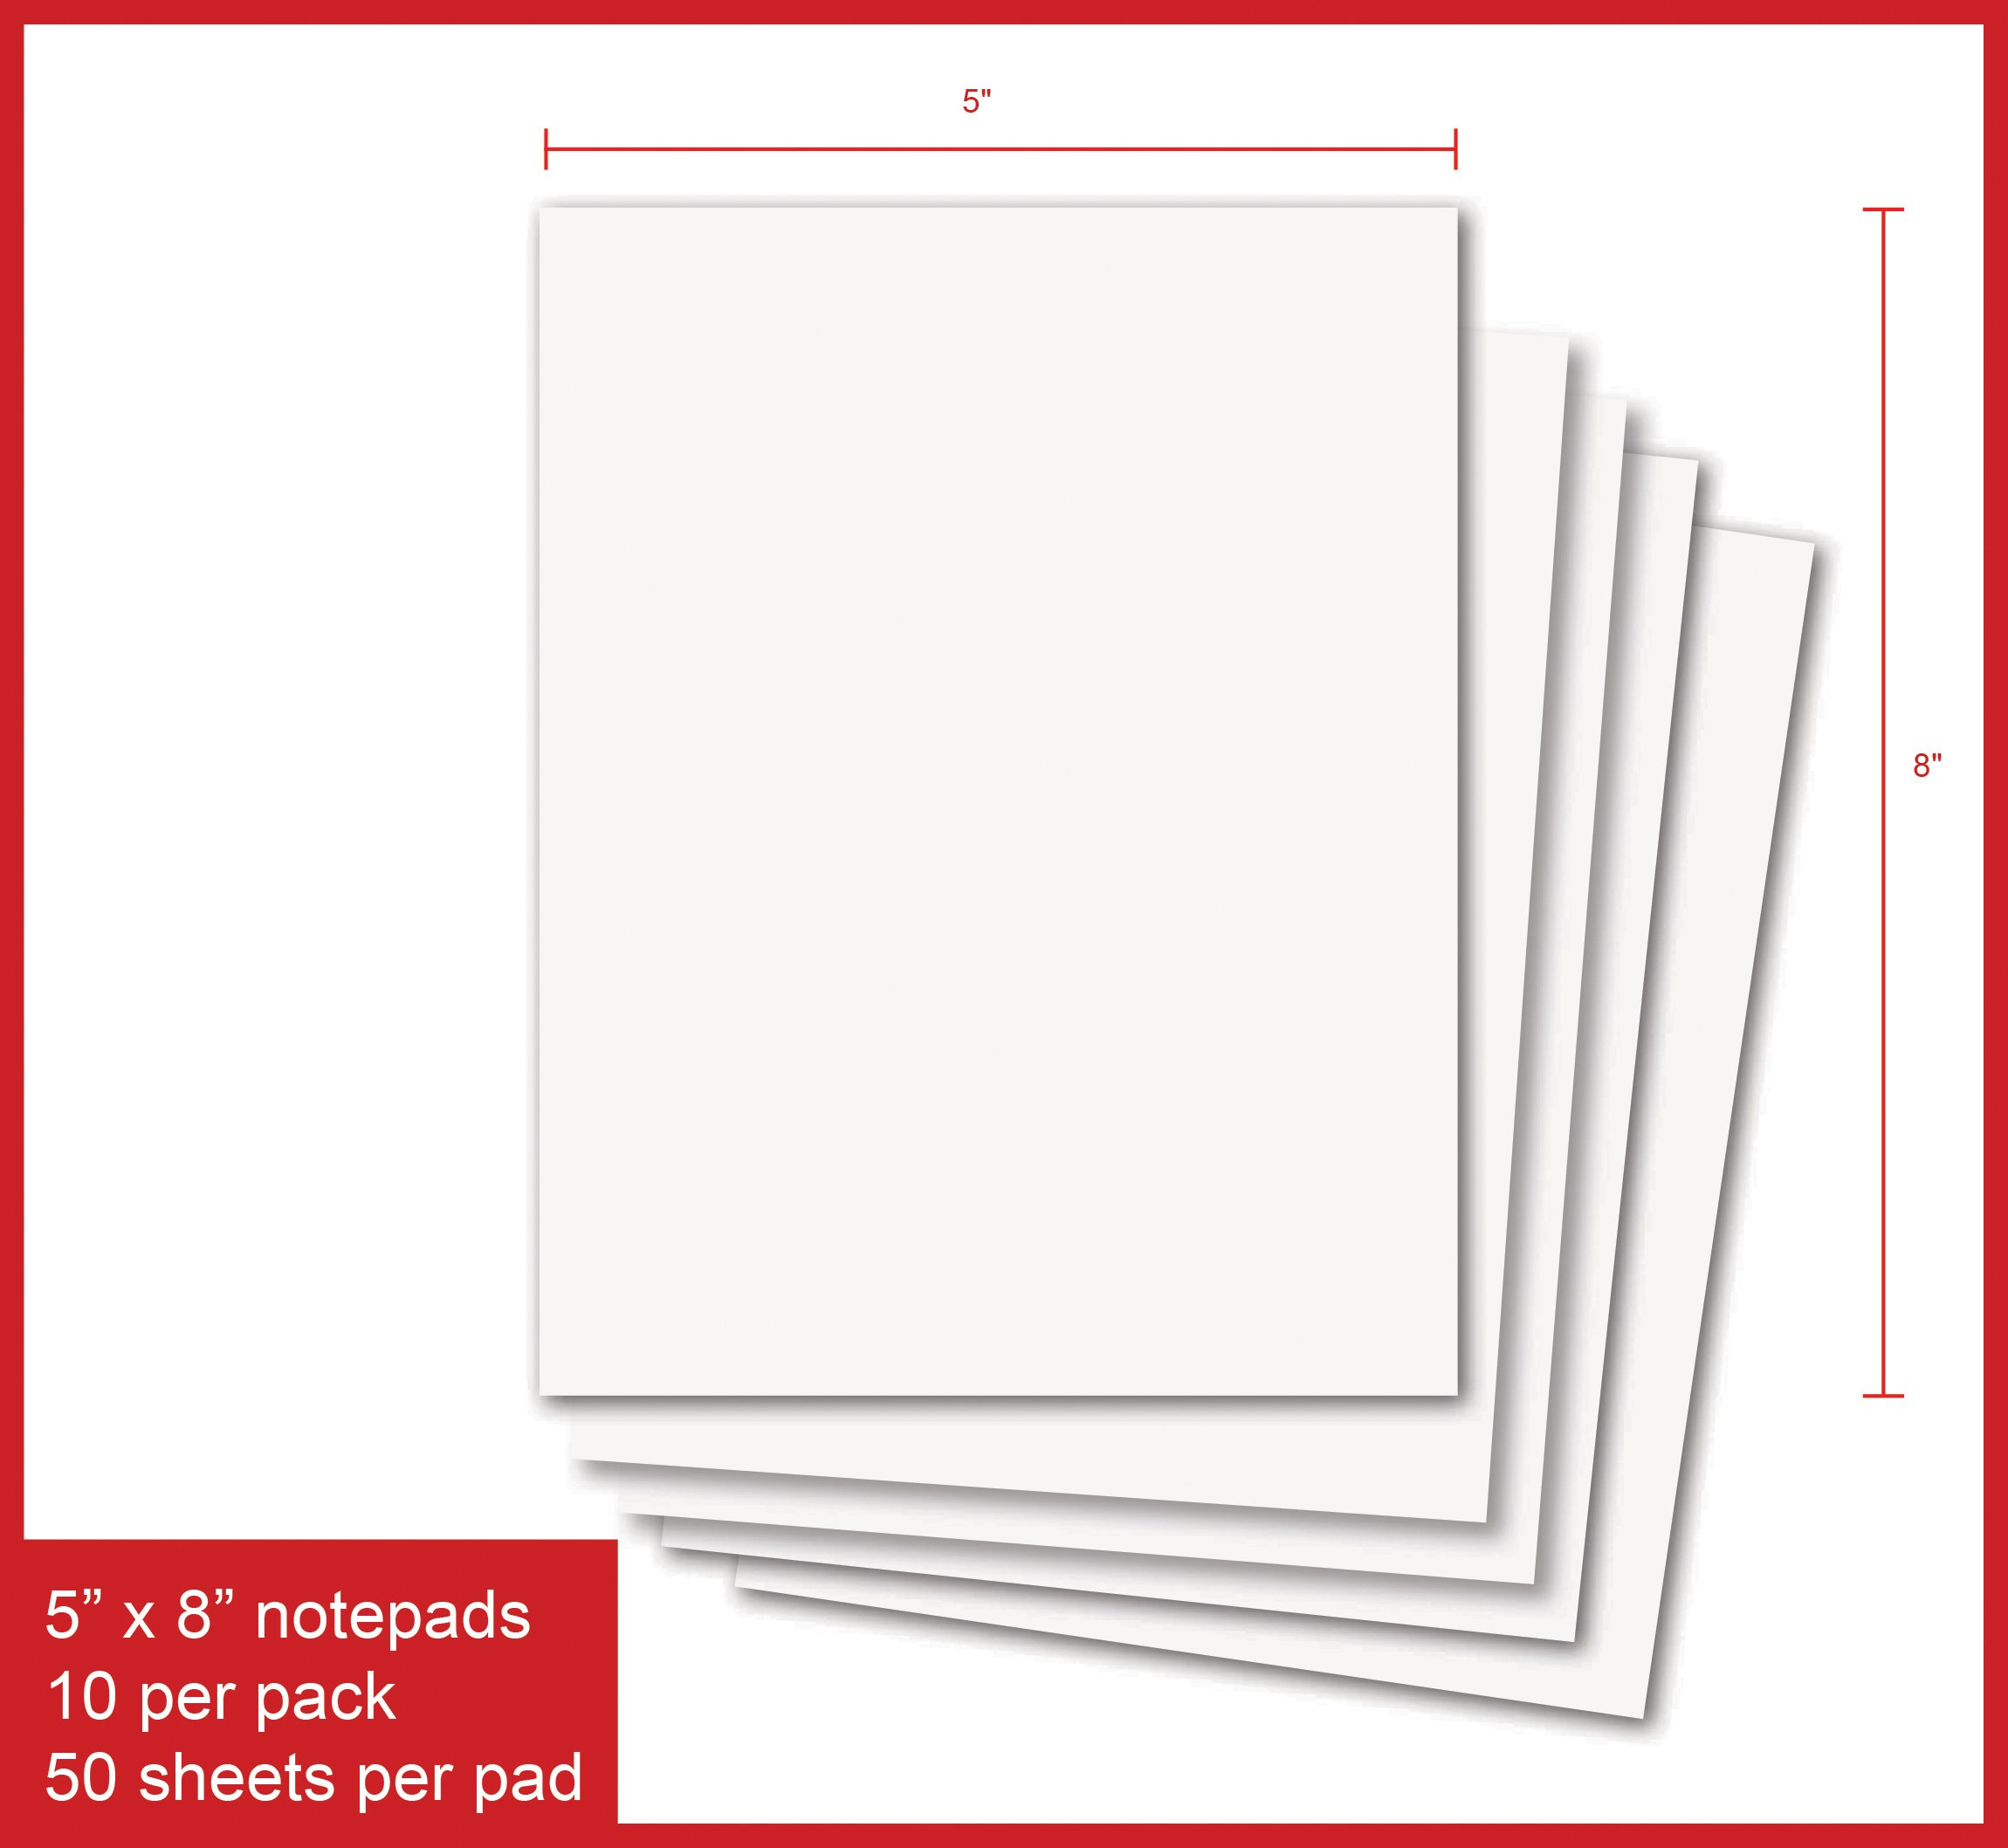 Creative Business Blank Notepads - Pack of 5 Memo Pads 8.5 x 5.5 Inches, 50 Sheets Per Pad Scratch Pads (8.5 x 5.5-5 Pads)